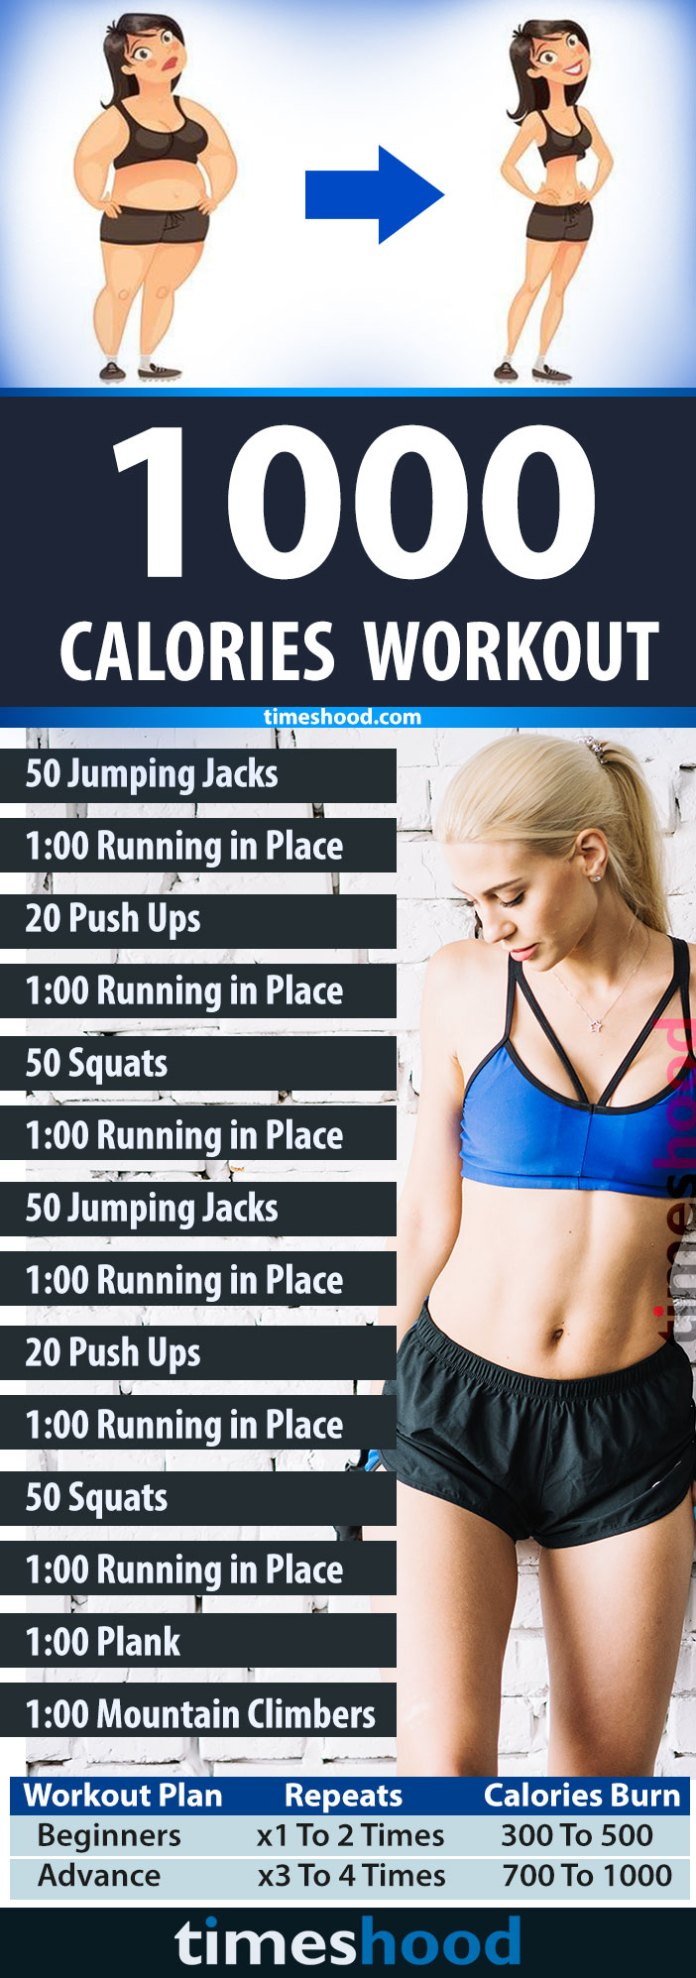 lose 10 pounds in 20 days diet